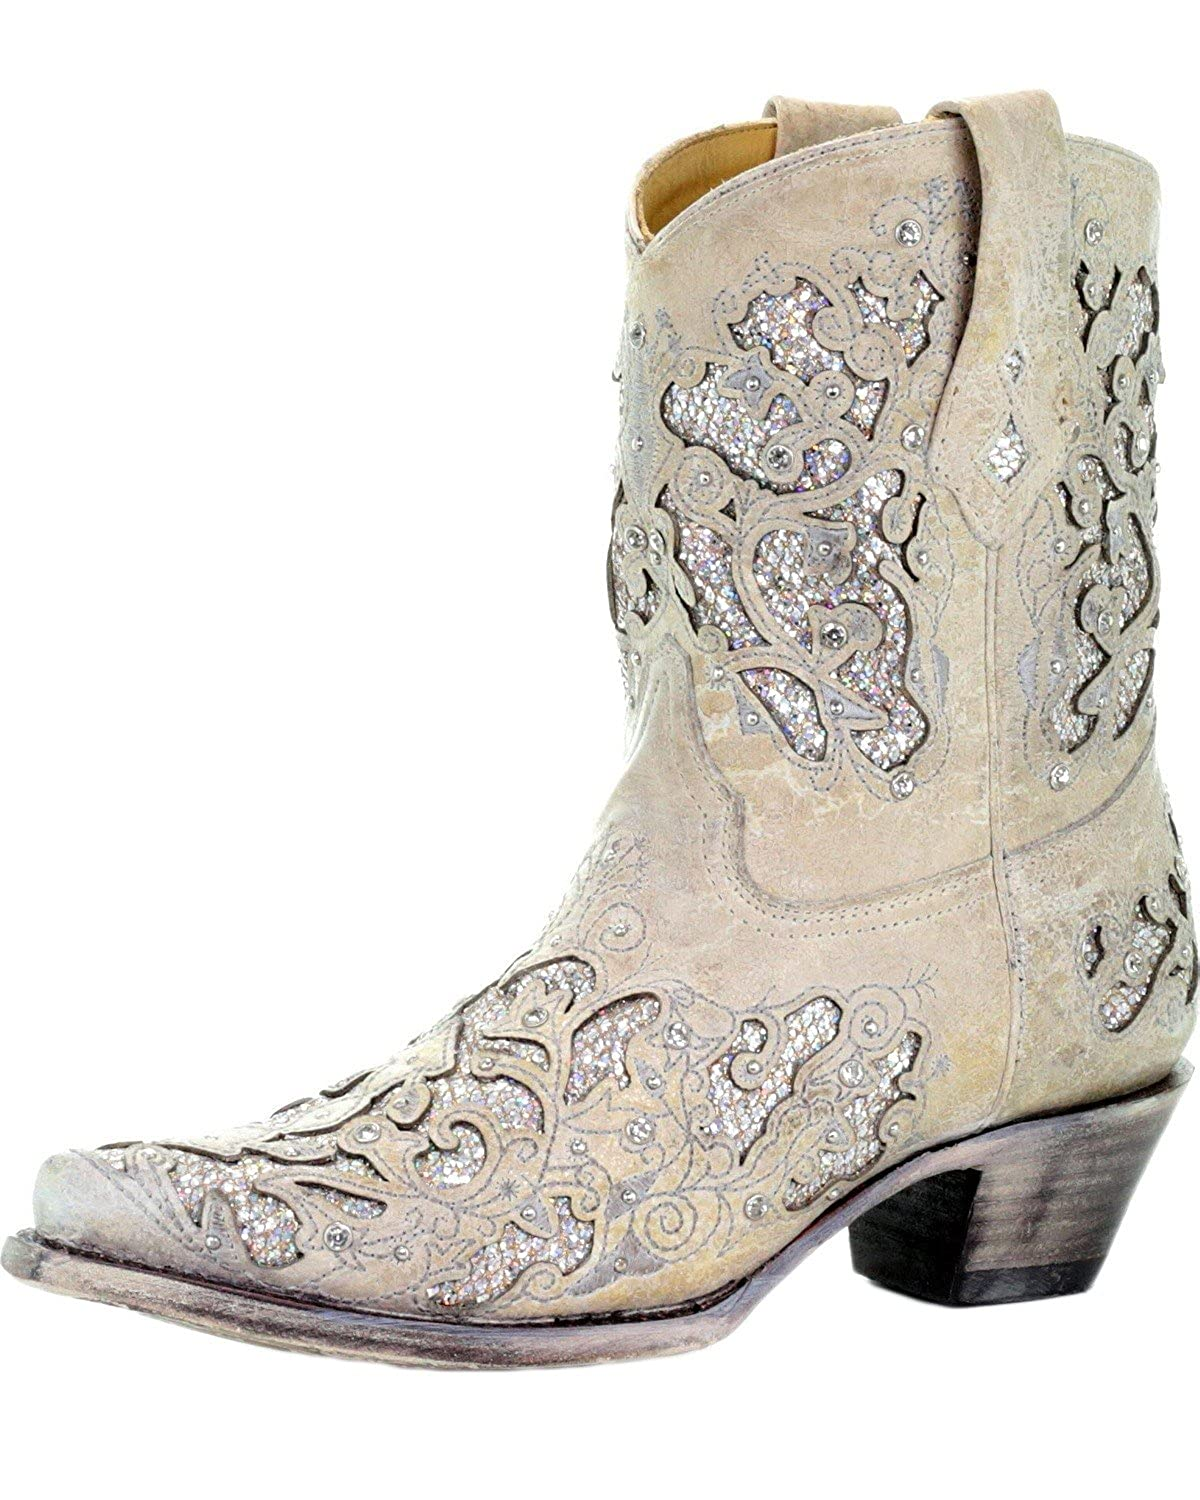 CORRAL A3550 White Leather Glitter Inlay Ankle Boot with Crystals B07CTYCZFN 9.5 M US